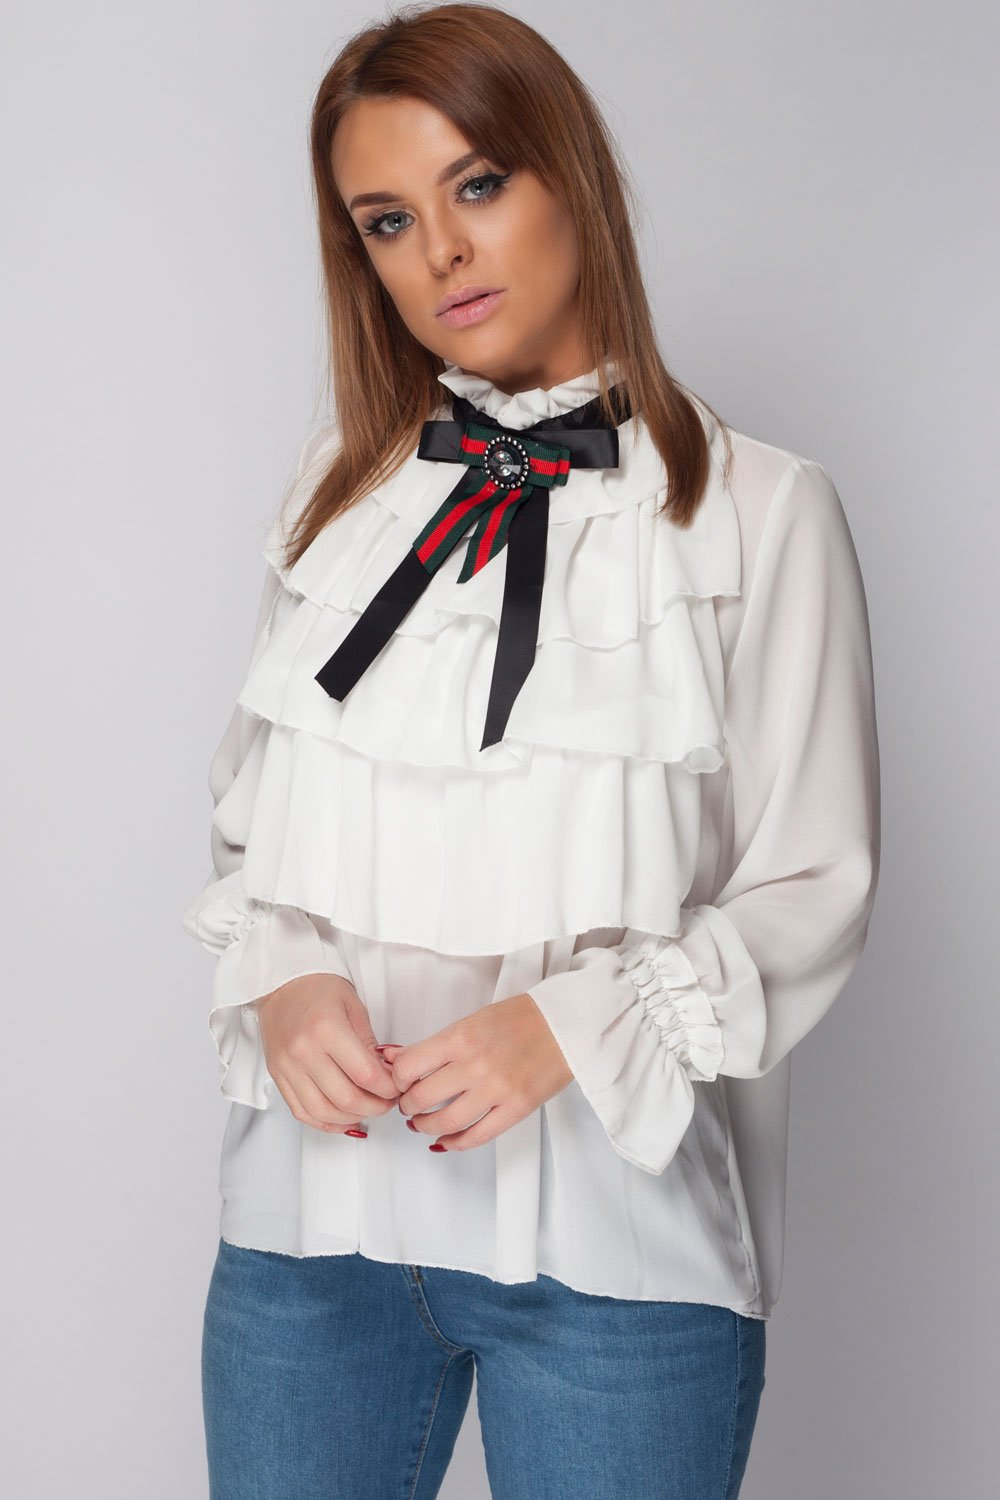 382af344a58db Womens Gucci Inspired Frill Blouse – Styledup.co.uk